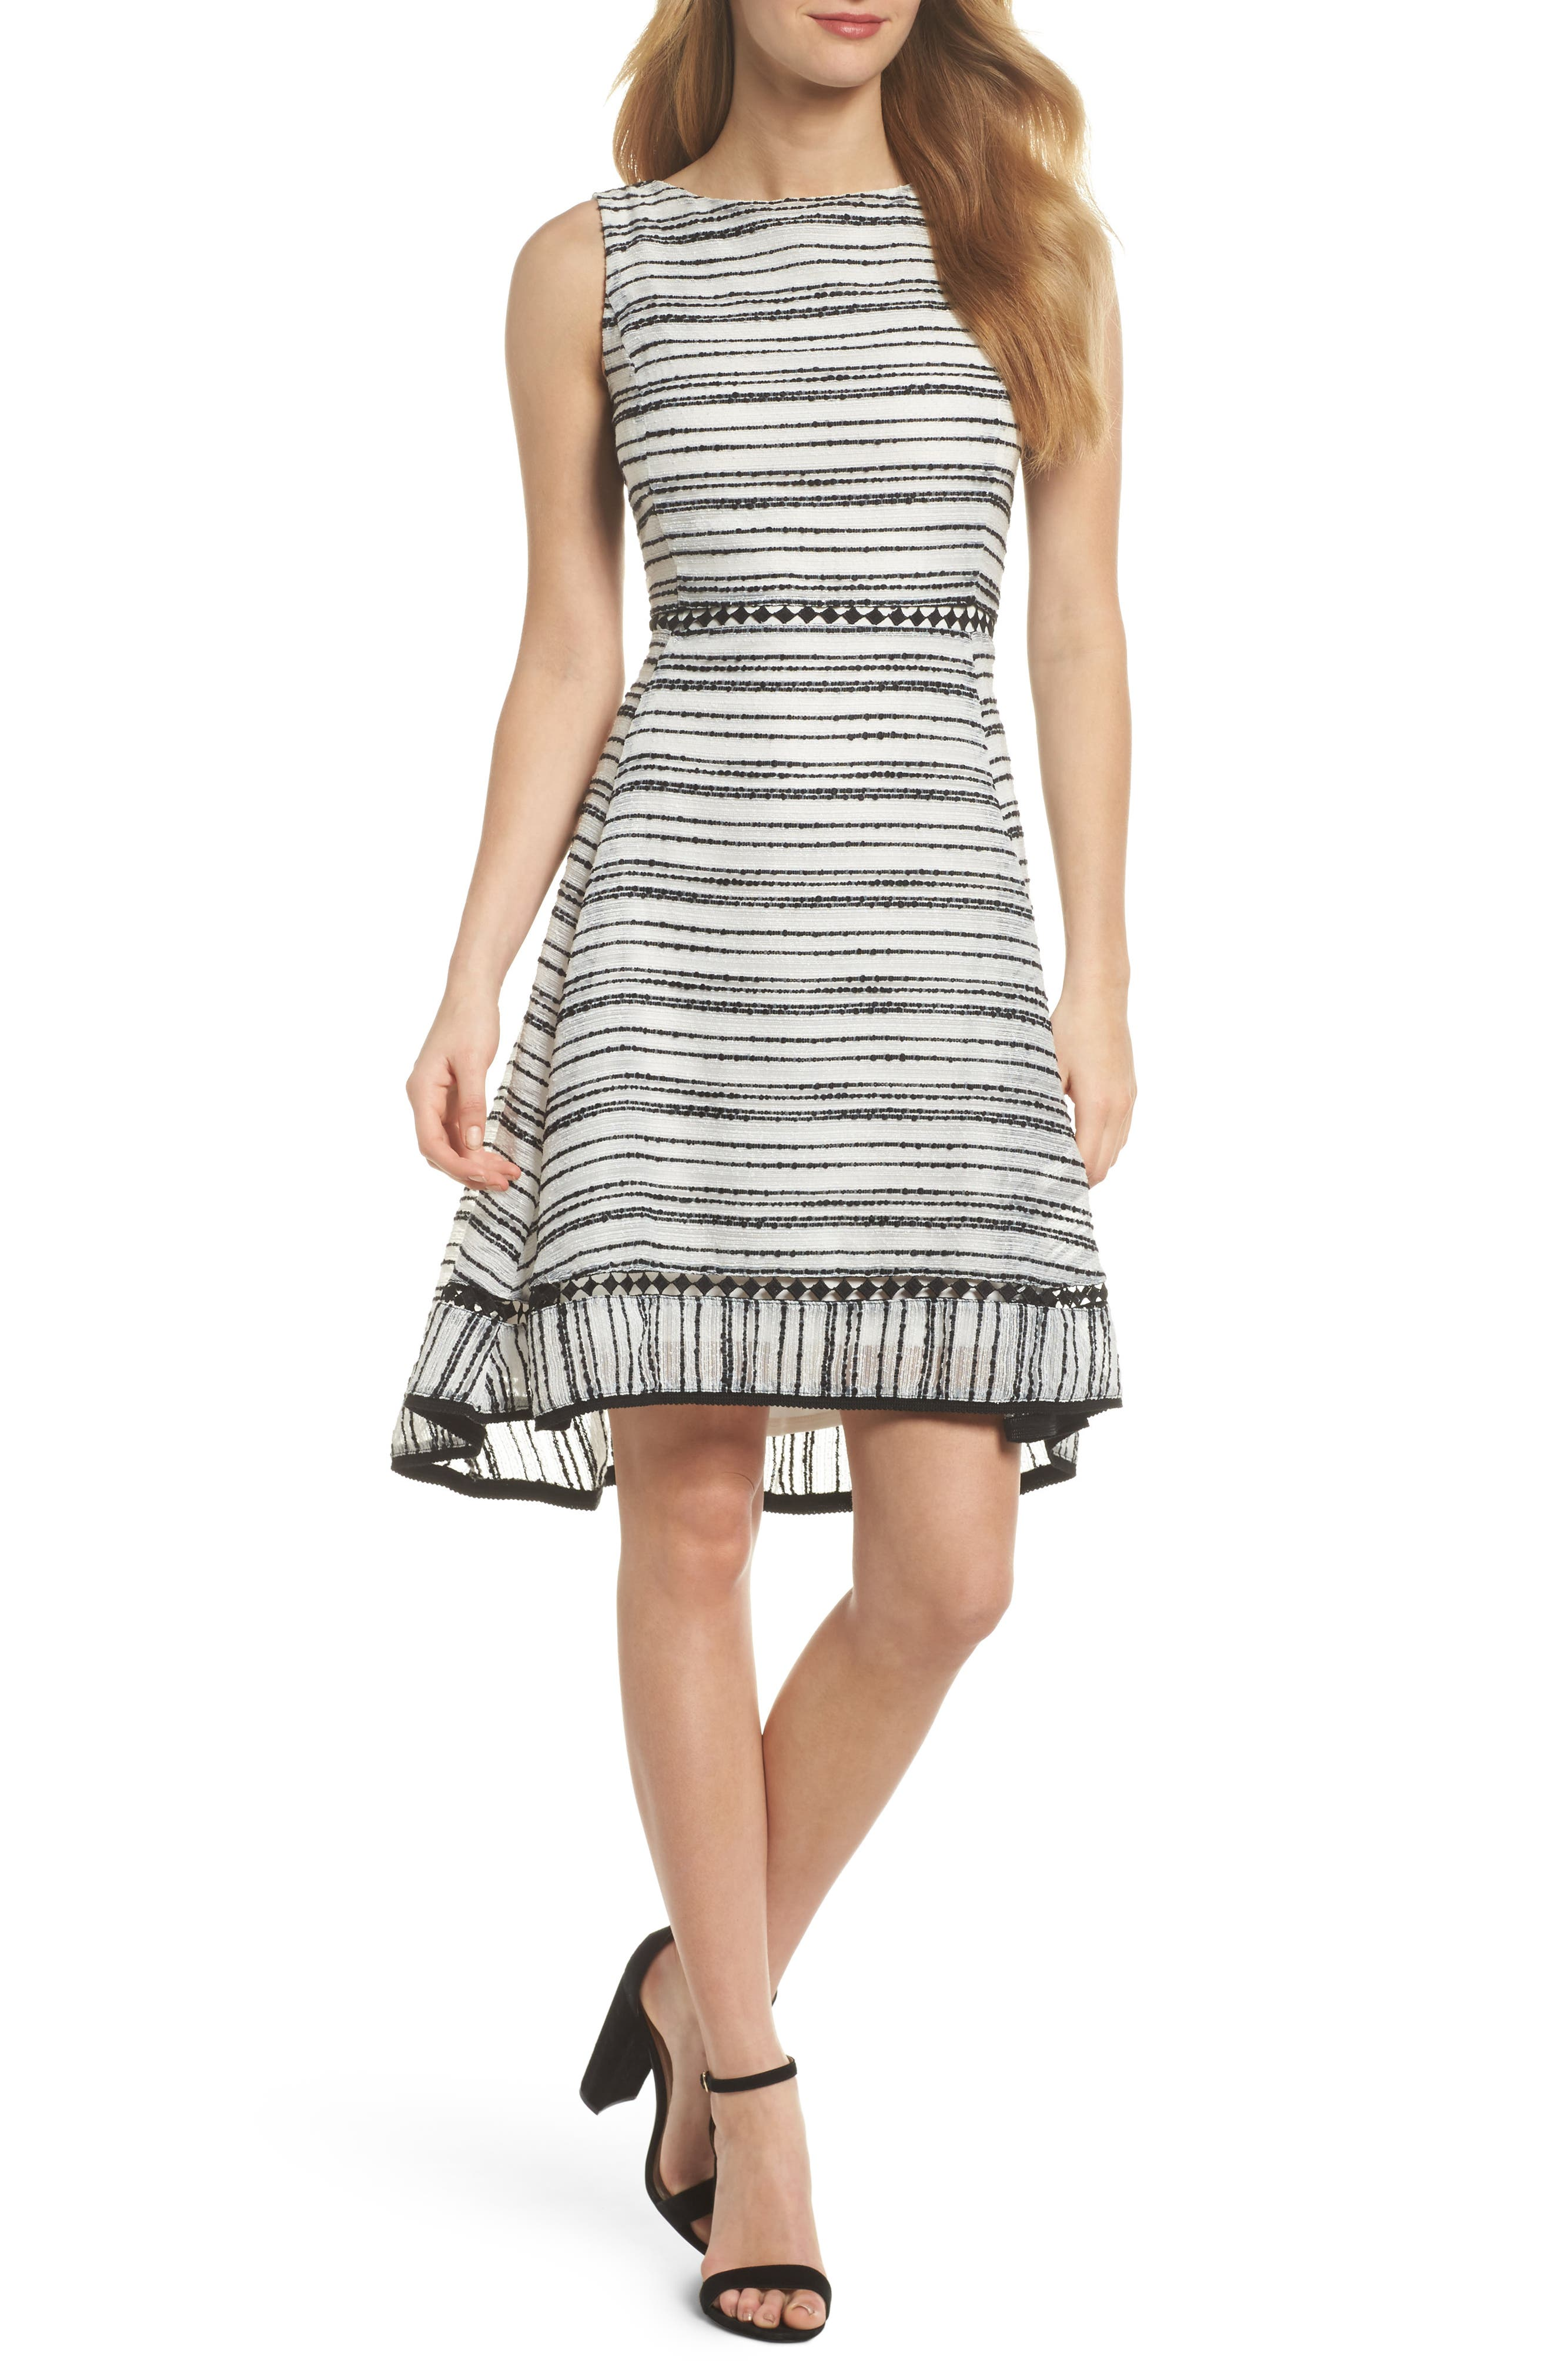 Taylor Dresses Stripe Fit & Flare Dress